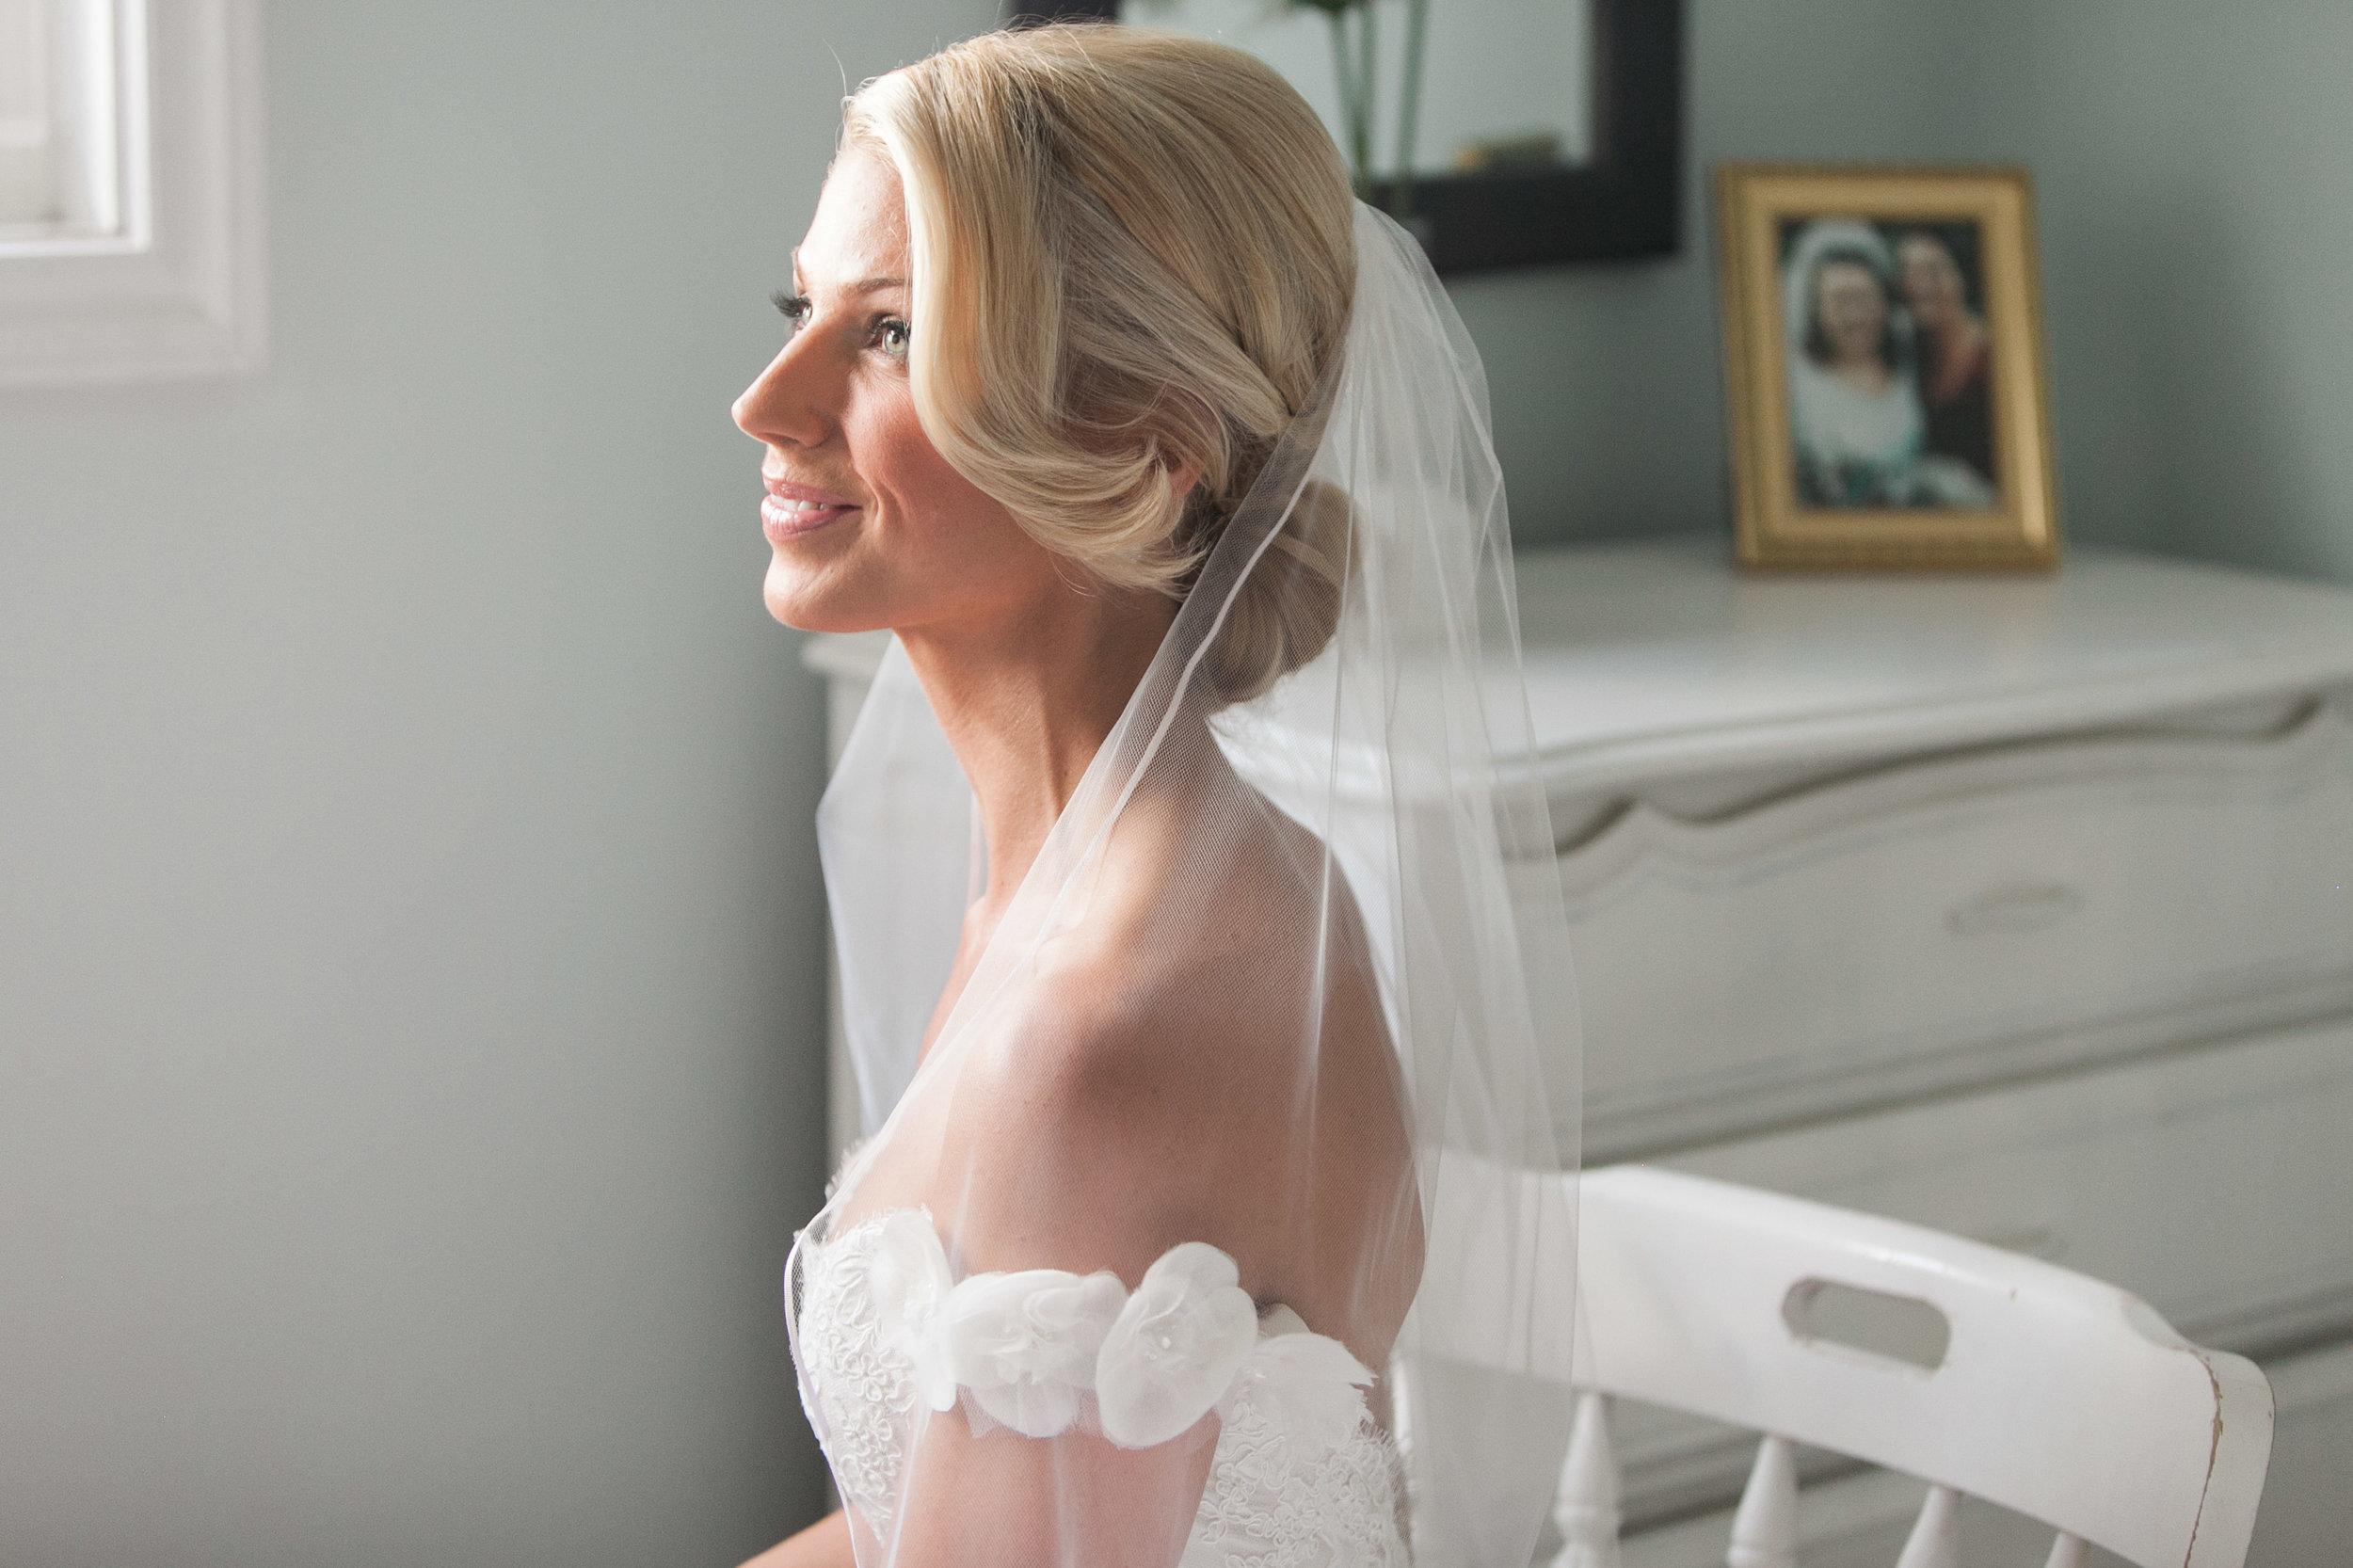 Bride portrait in childhood bedroom